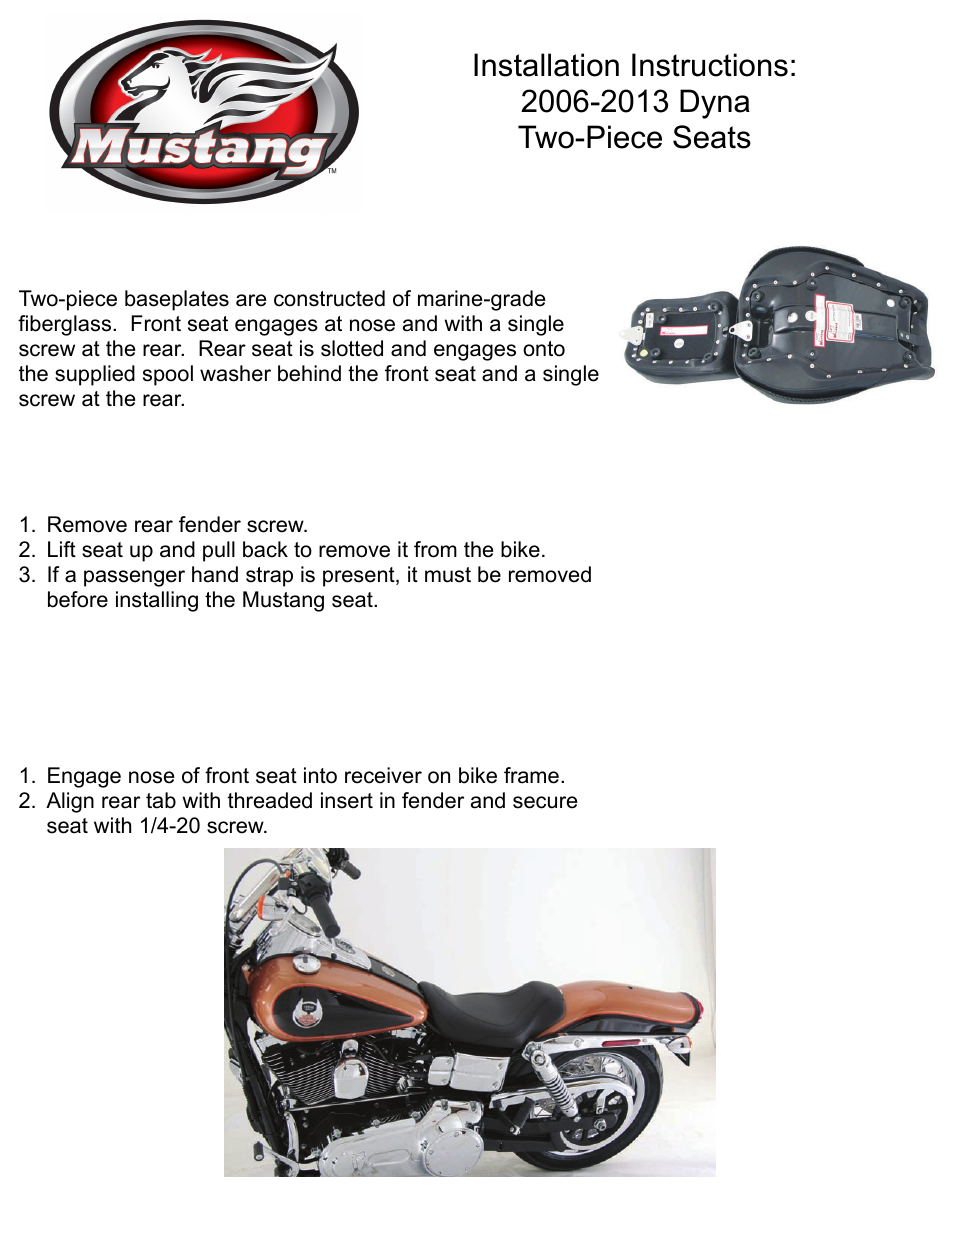 Mustang Motorcycle Seats Deluxe Tripper Solo Seat - Harley